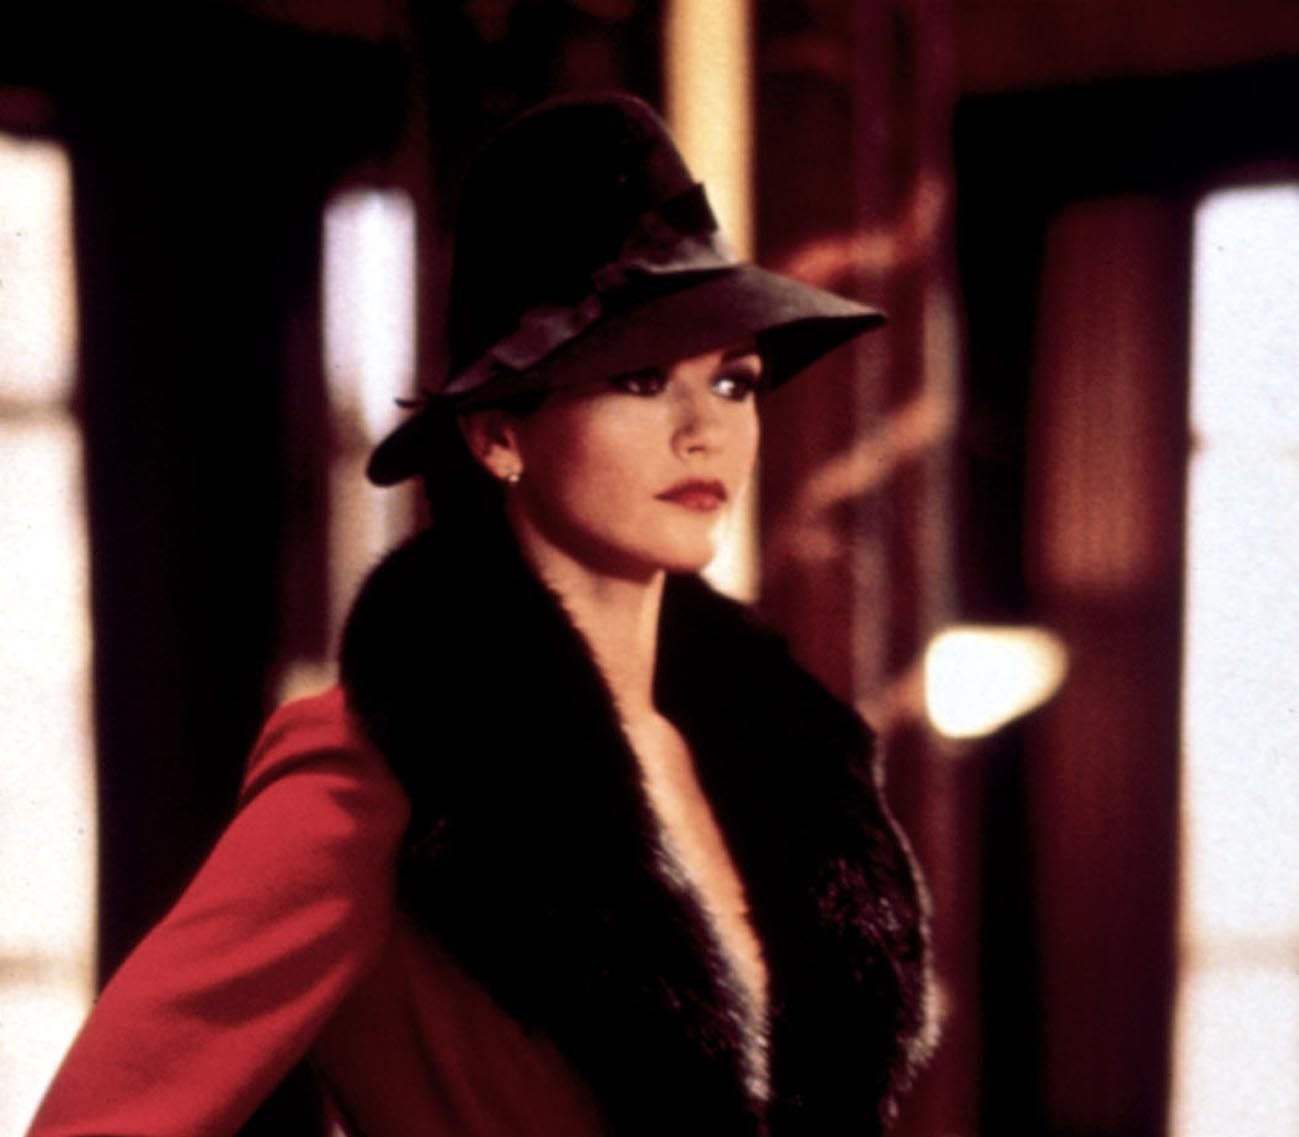 8w1 e1603184183679 20 Things You Never Knew About Catherine Zeta-Jones